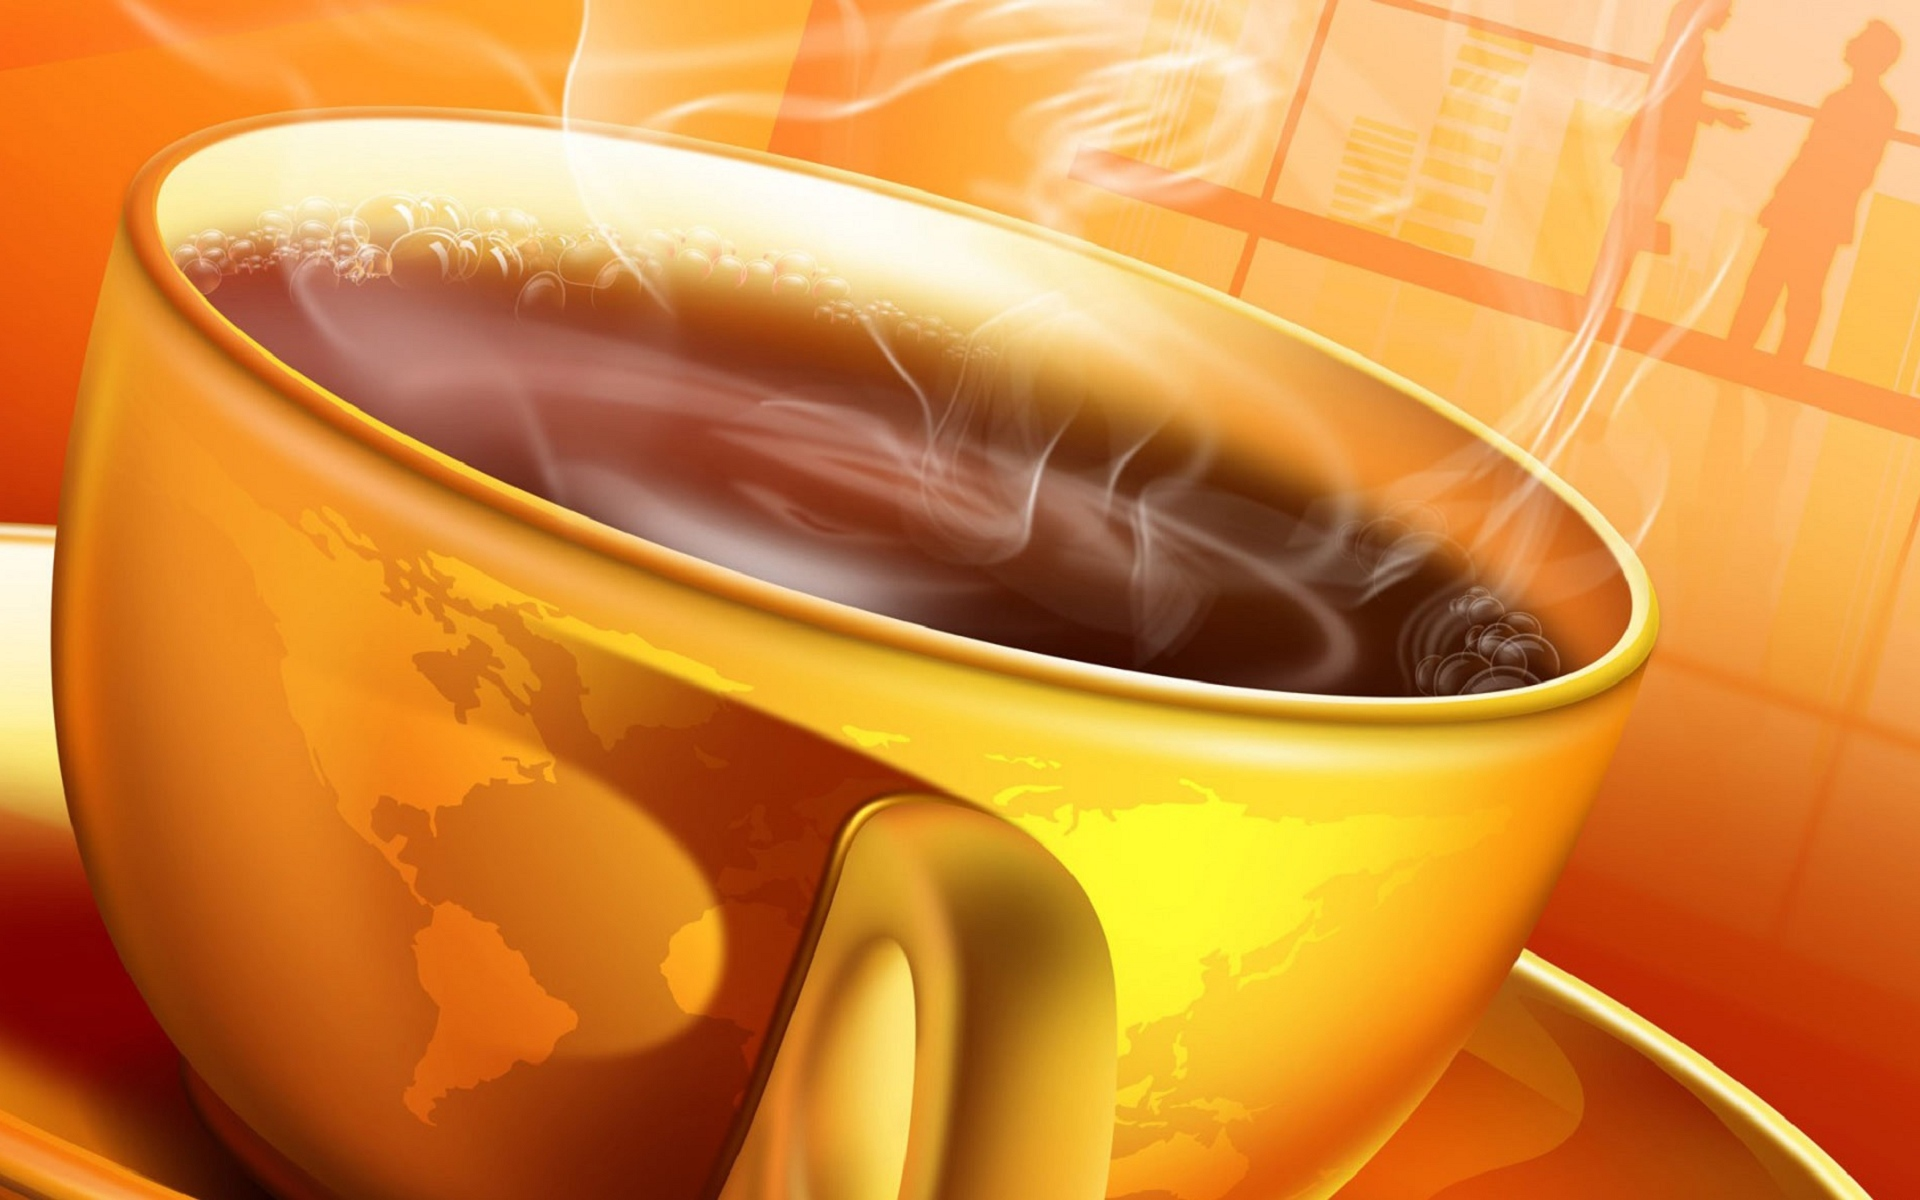 Warm Coffee Wallpapers HD Wallpapers 1920x1200